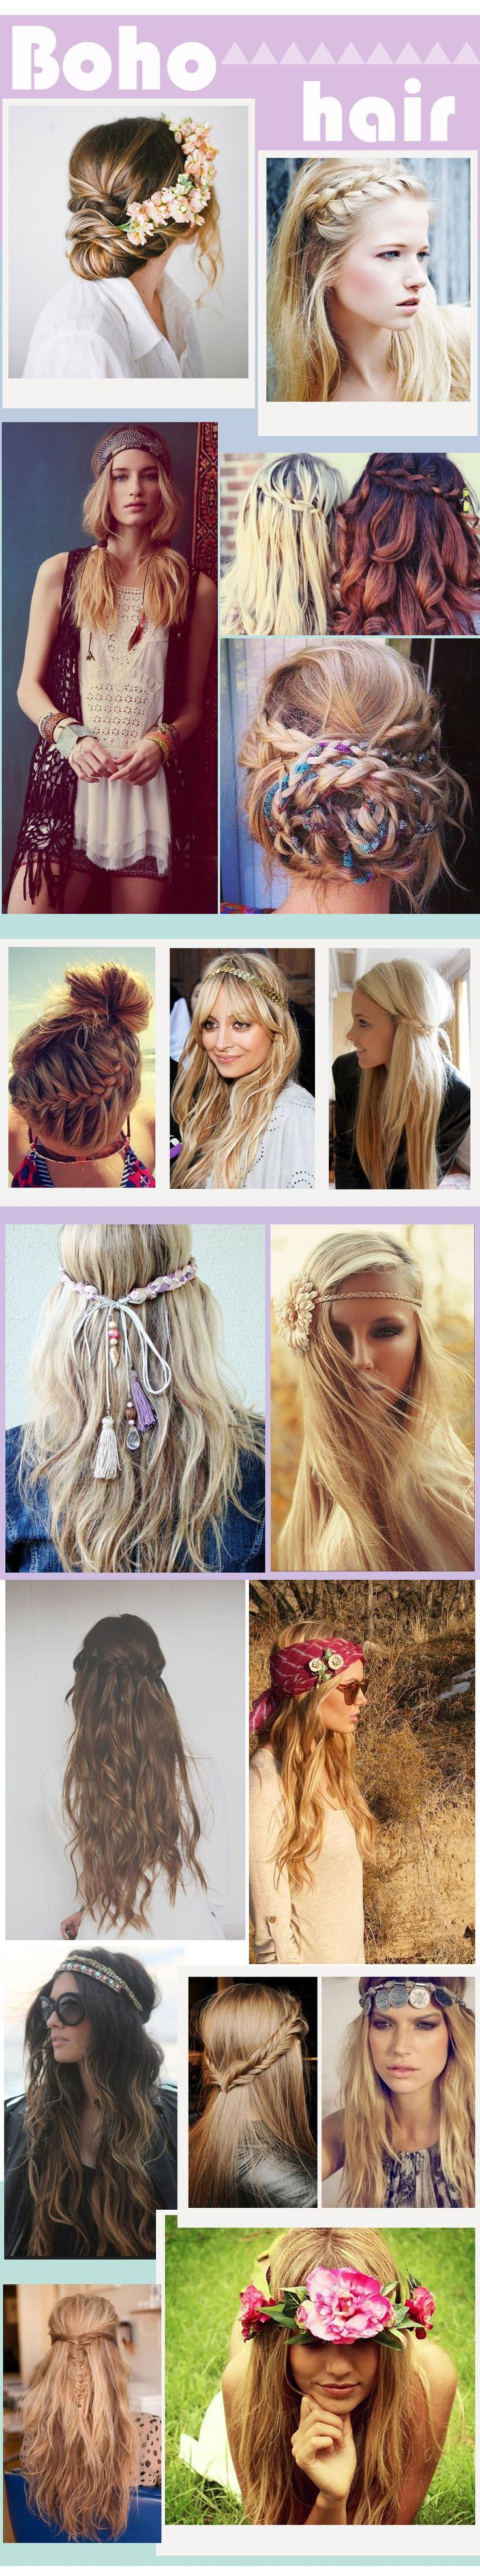 Coachella Festival Hair Tutorials (to be used WHENEVER)